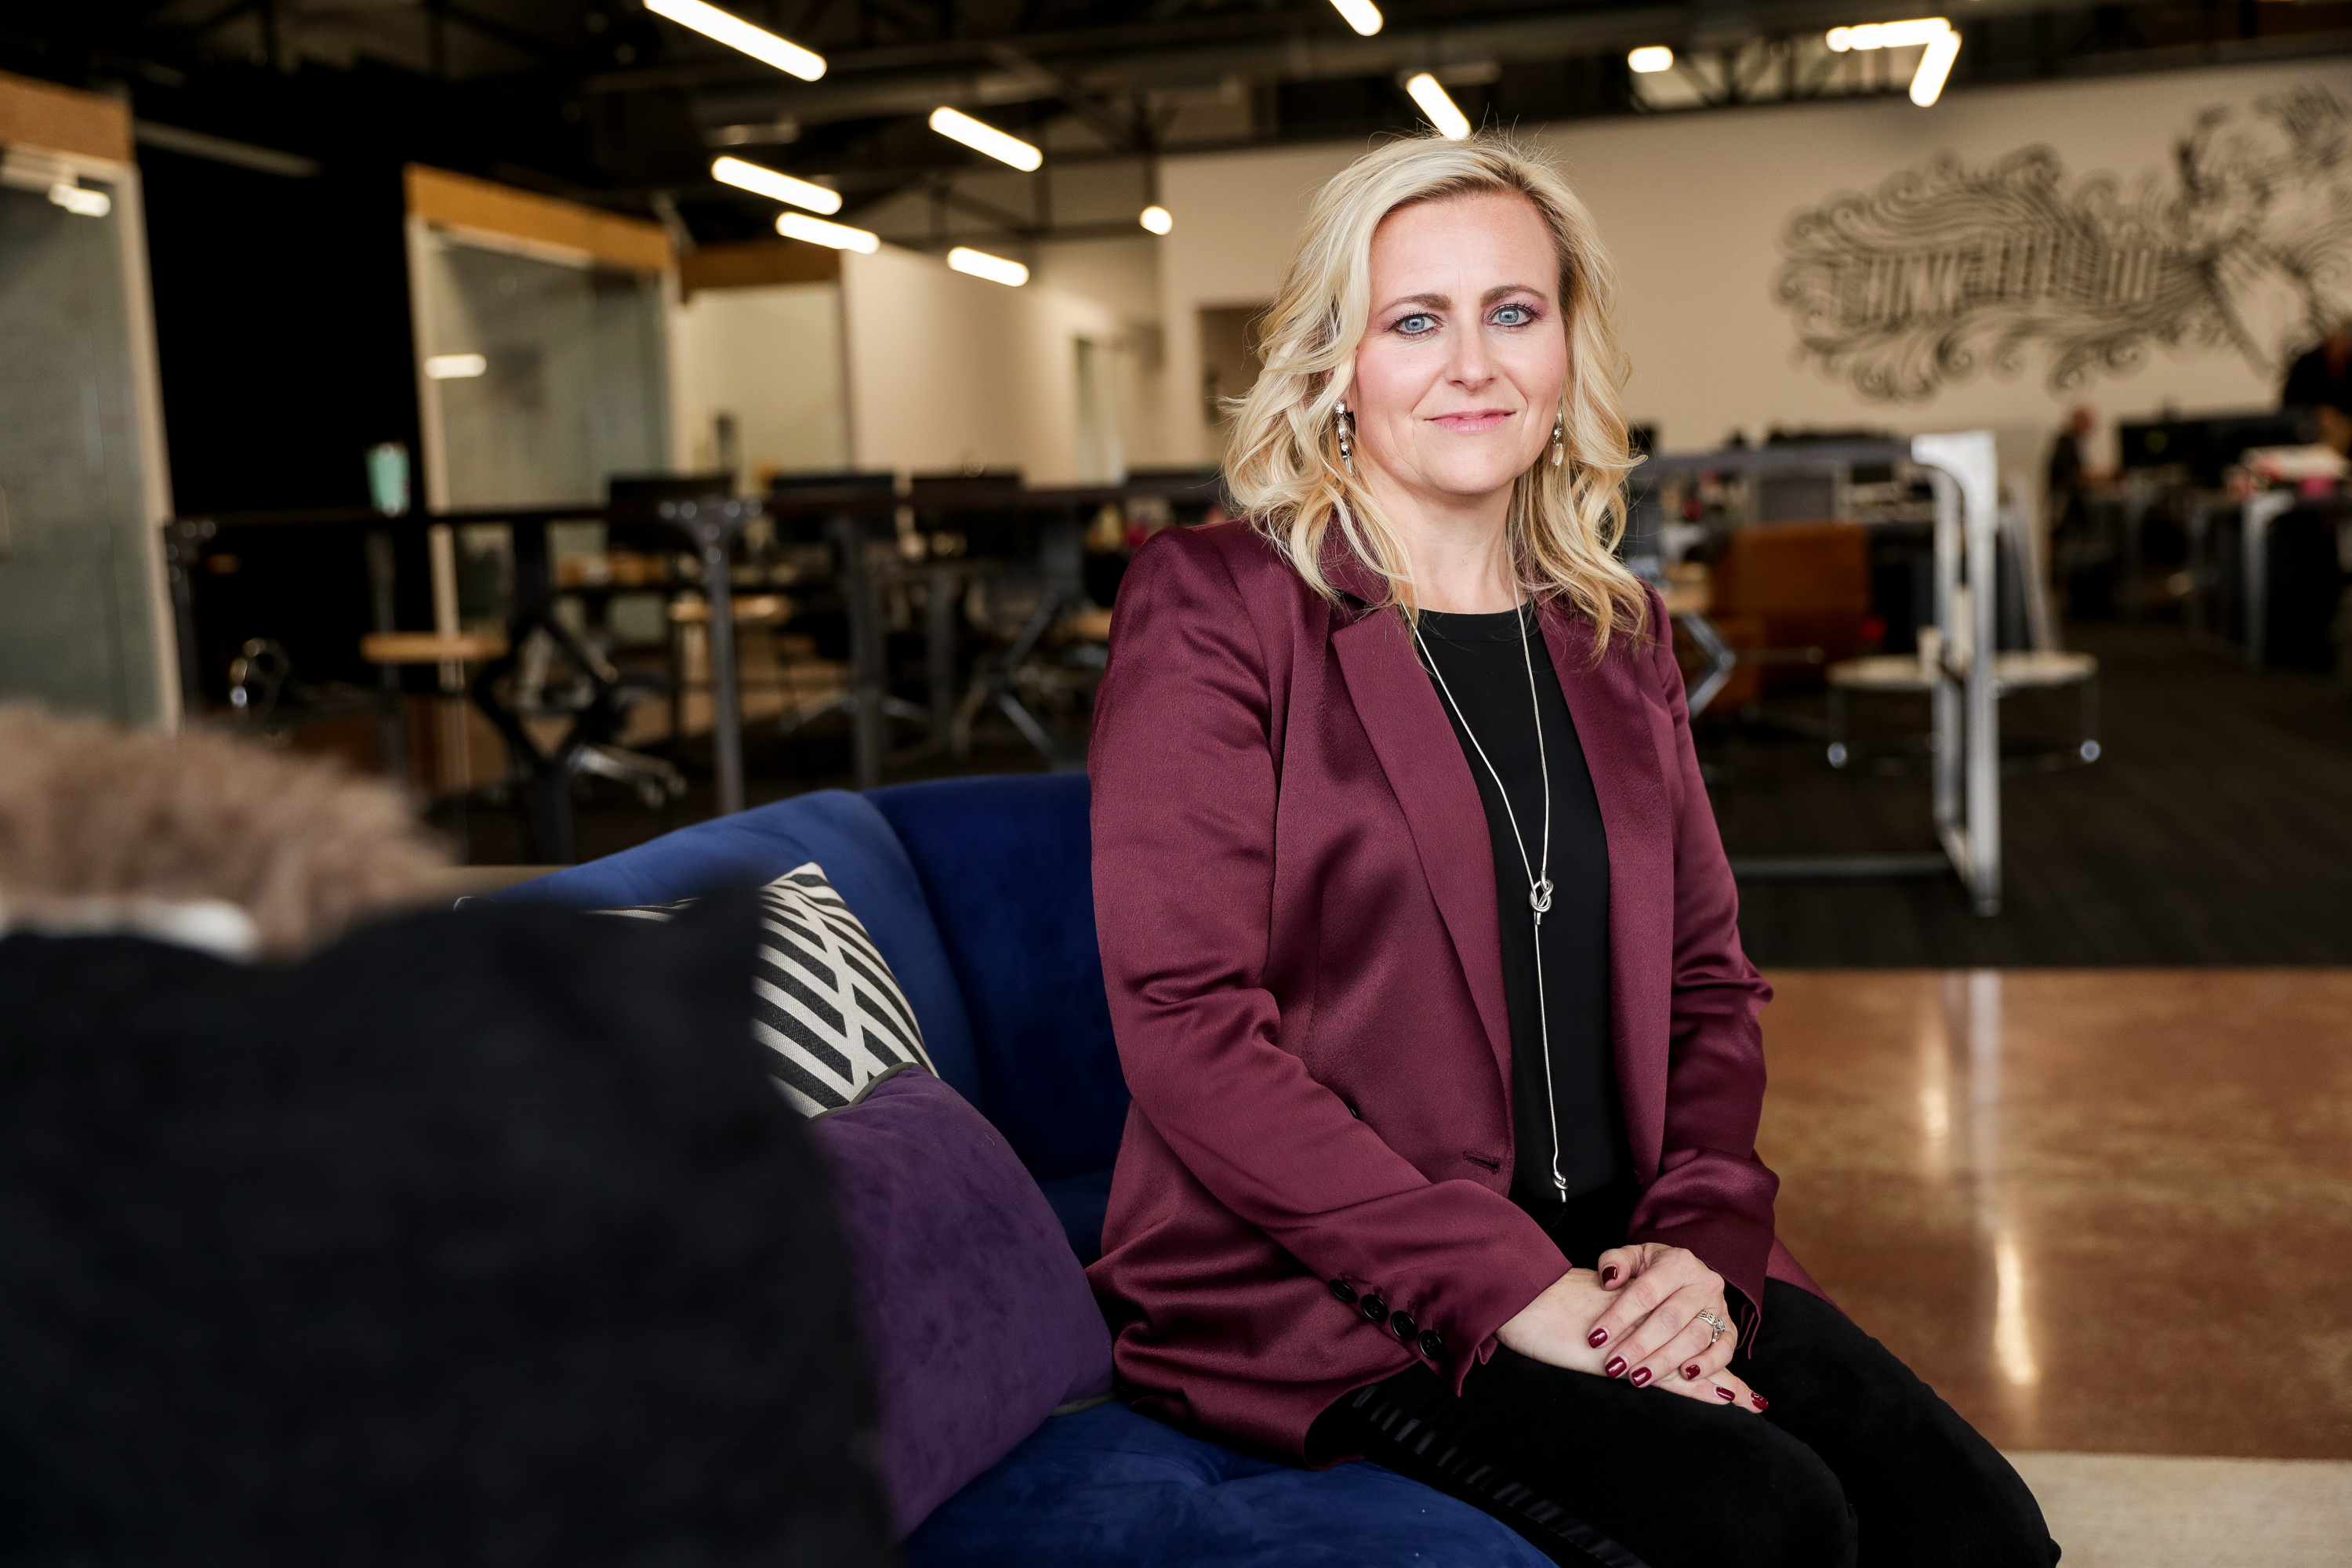 Cydni Tetro, CEO and founder of ForgeDX, poses for photos at the company's office in Salt Lake City on Jan. 18, 2019.